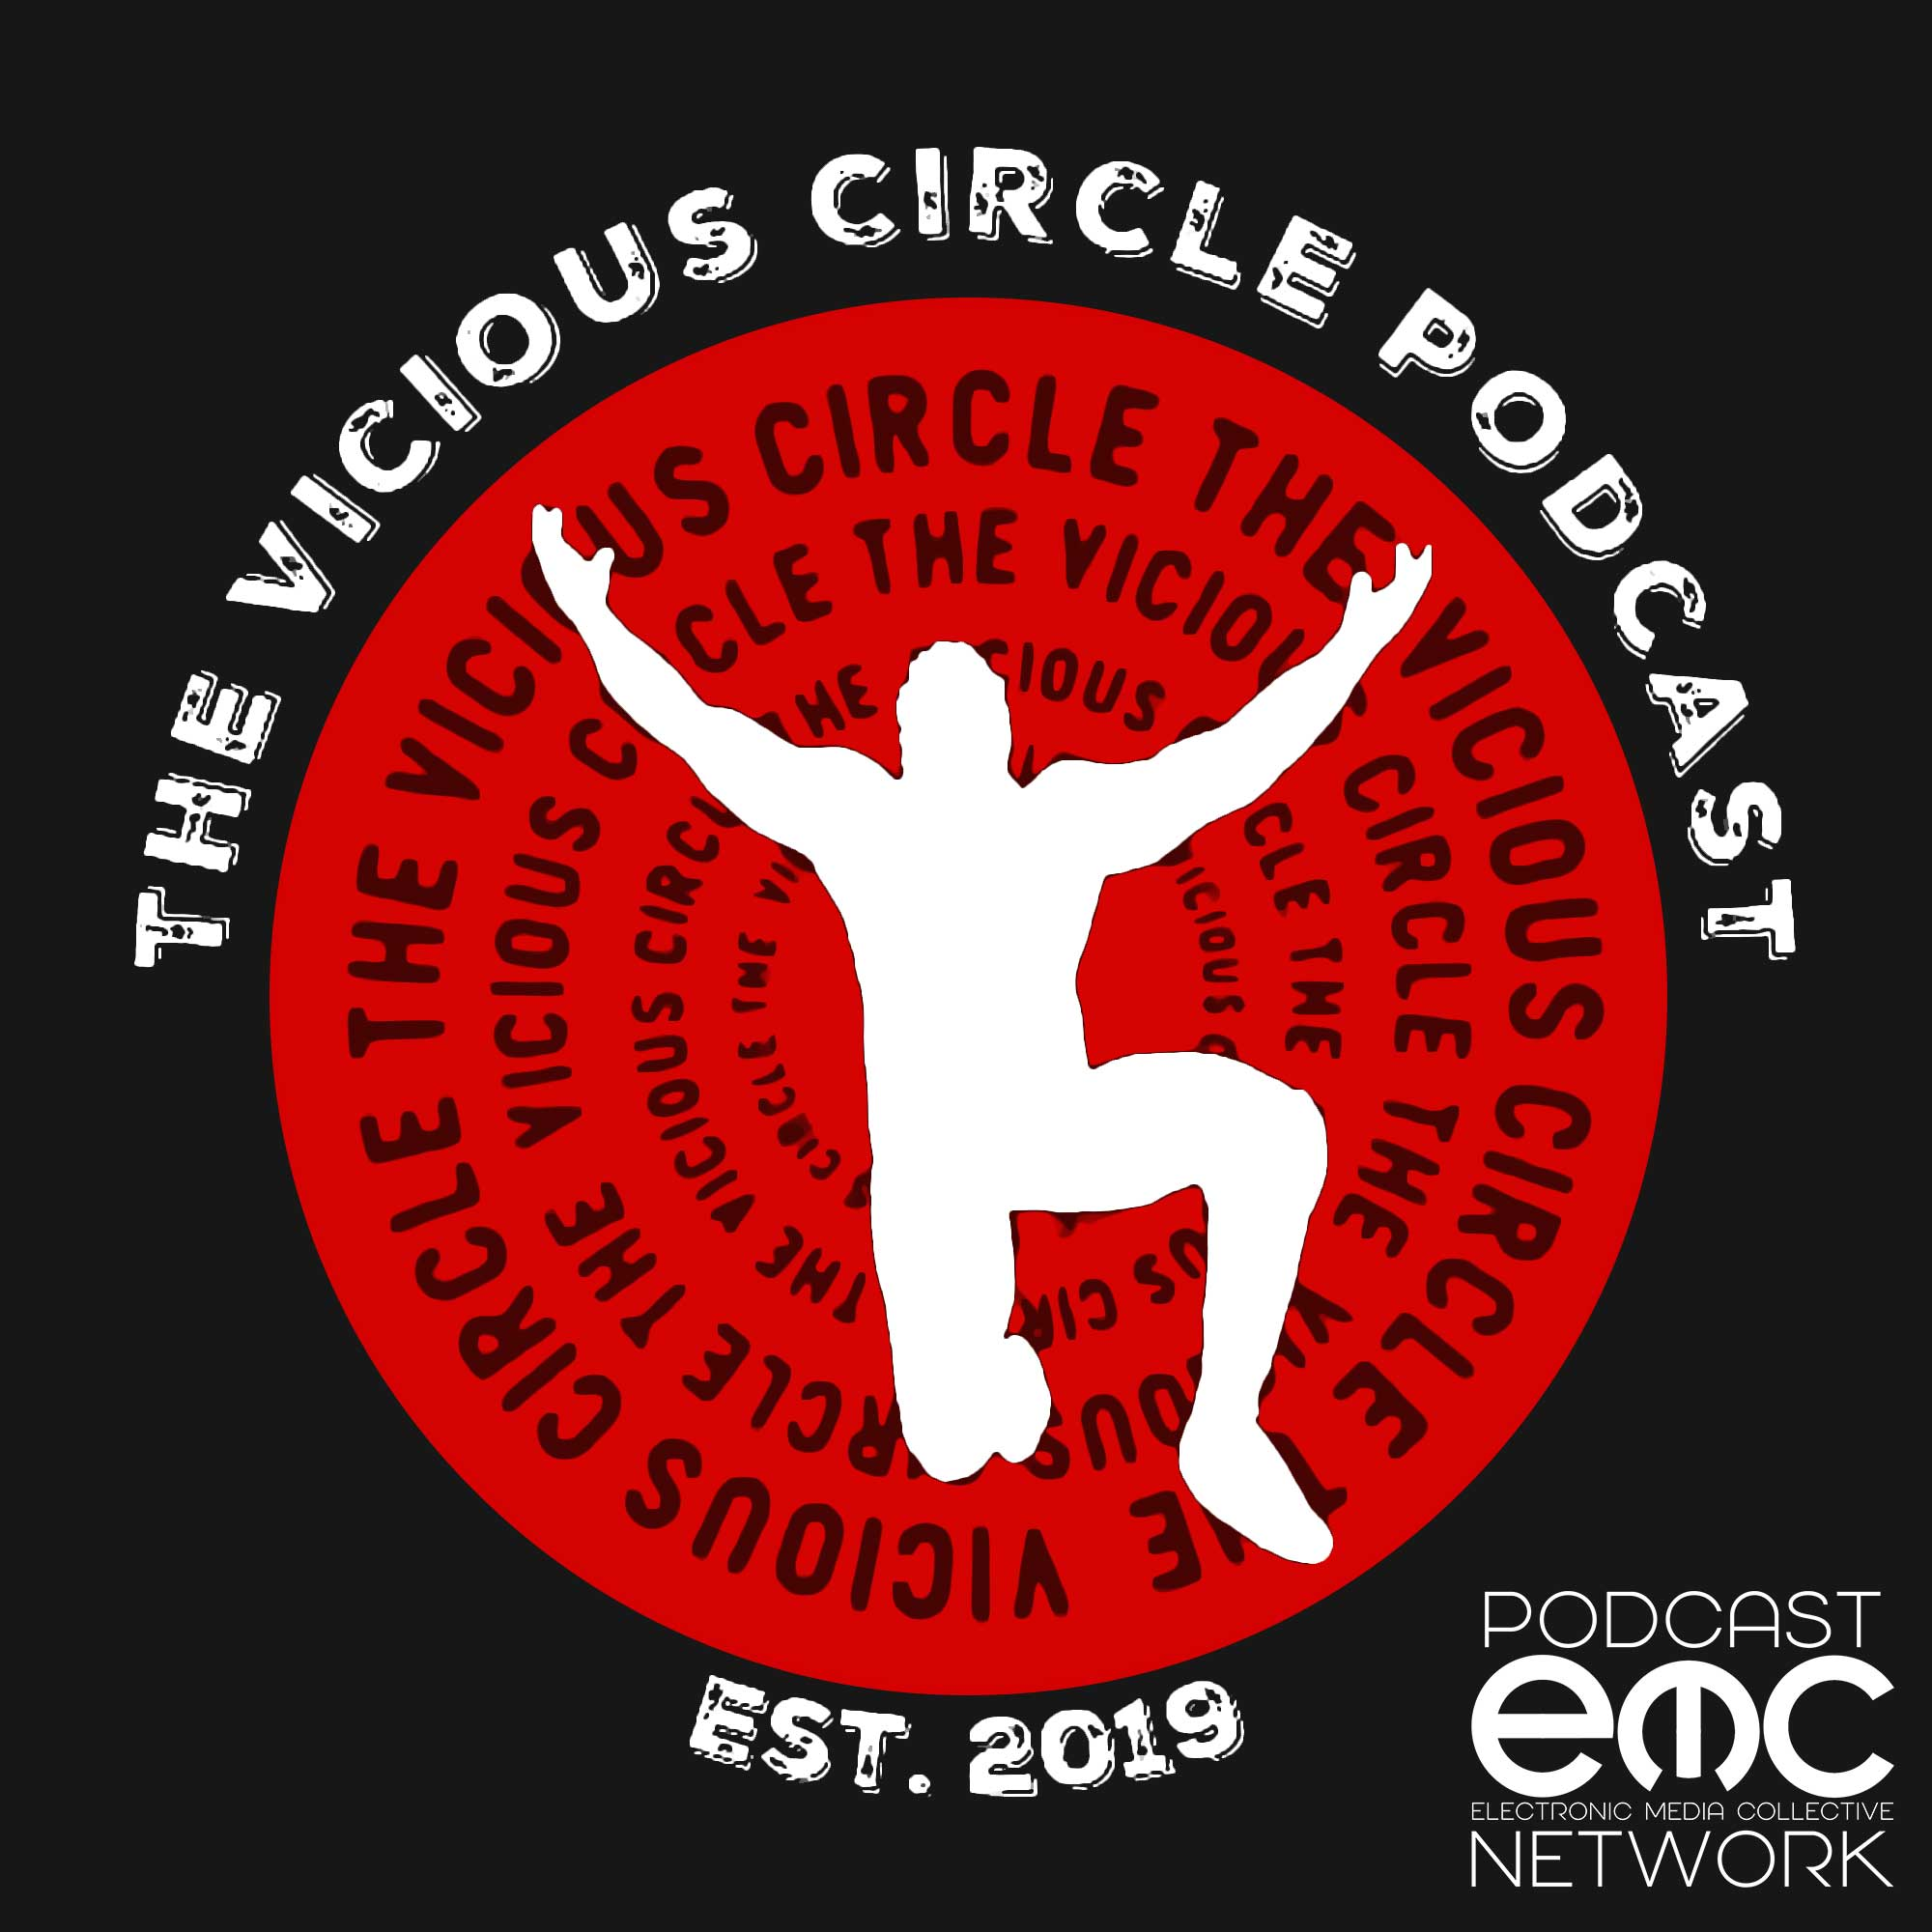 Vicious Circle Podcast on EMC